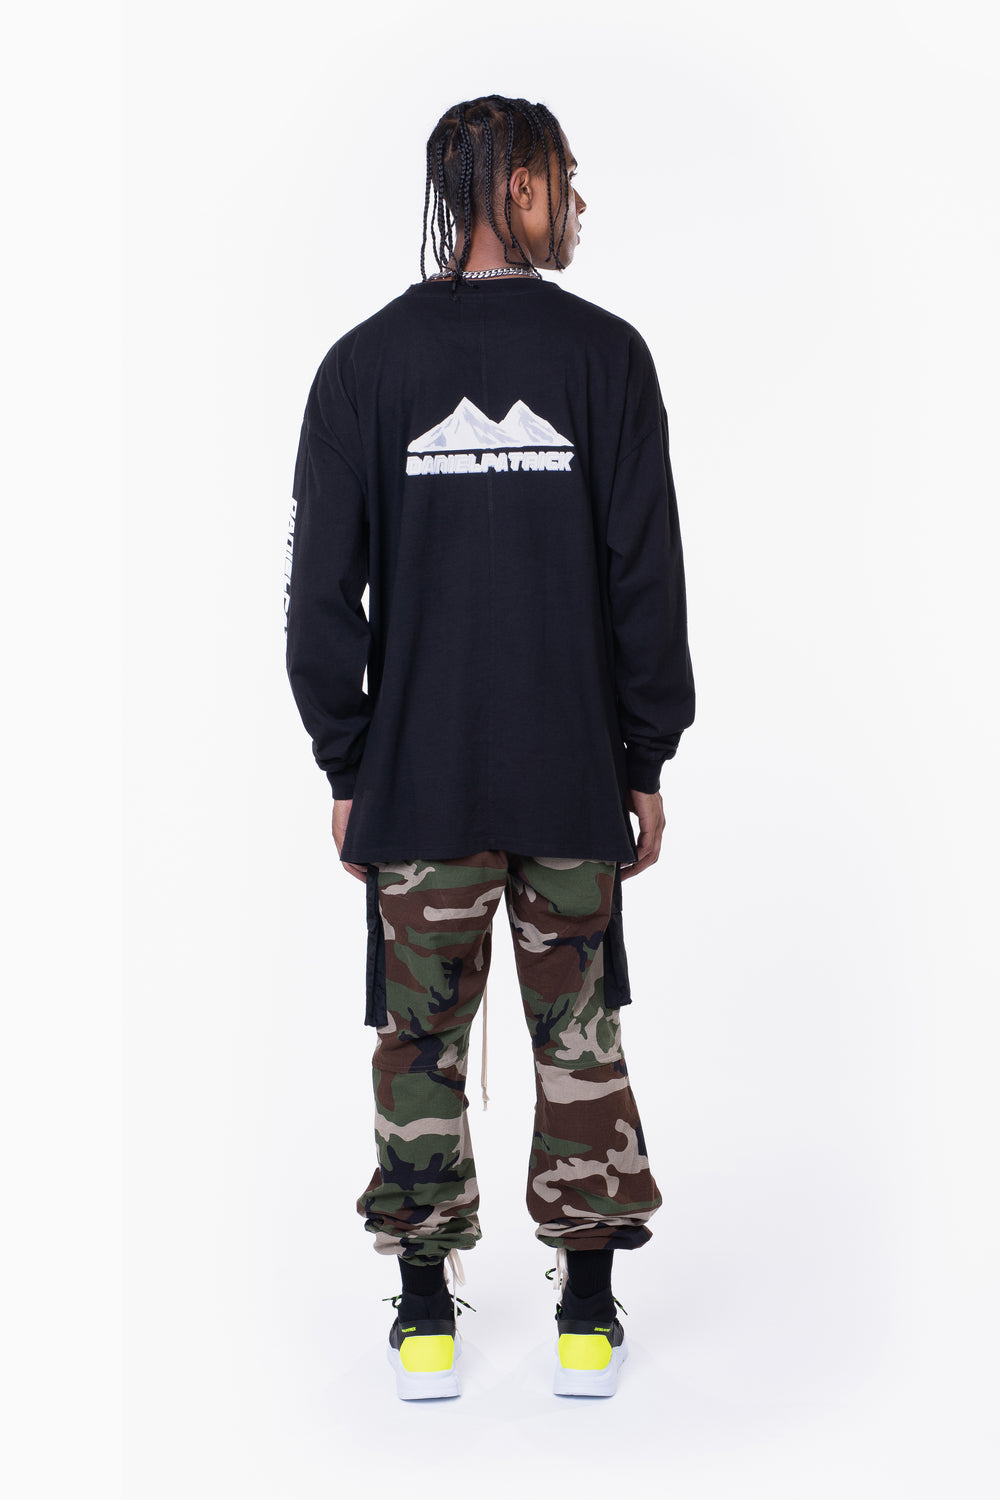 moving mountains l/s tee / black